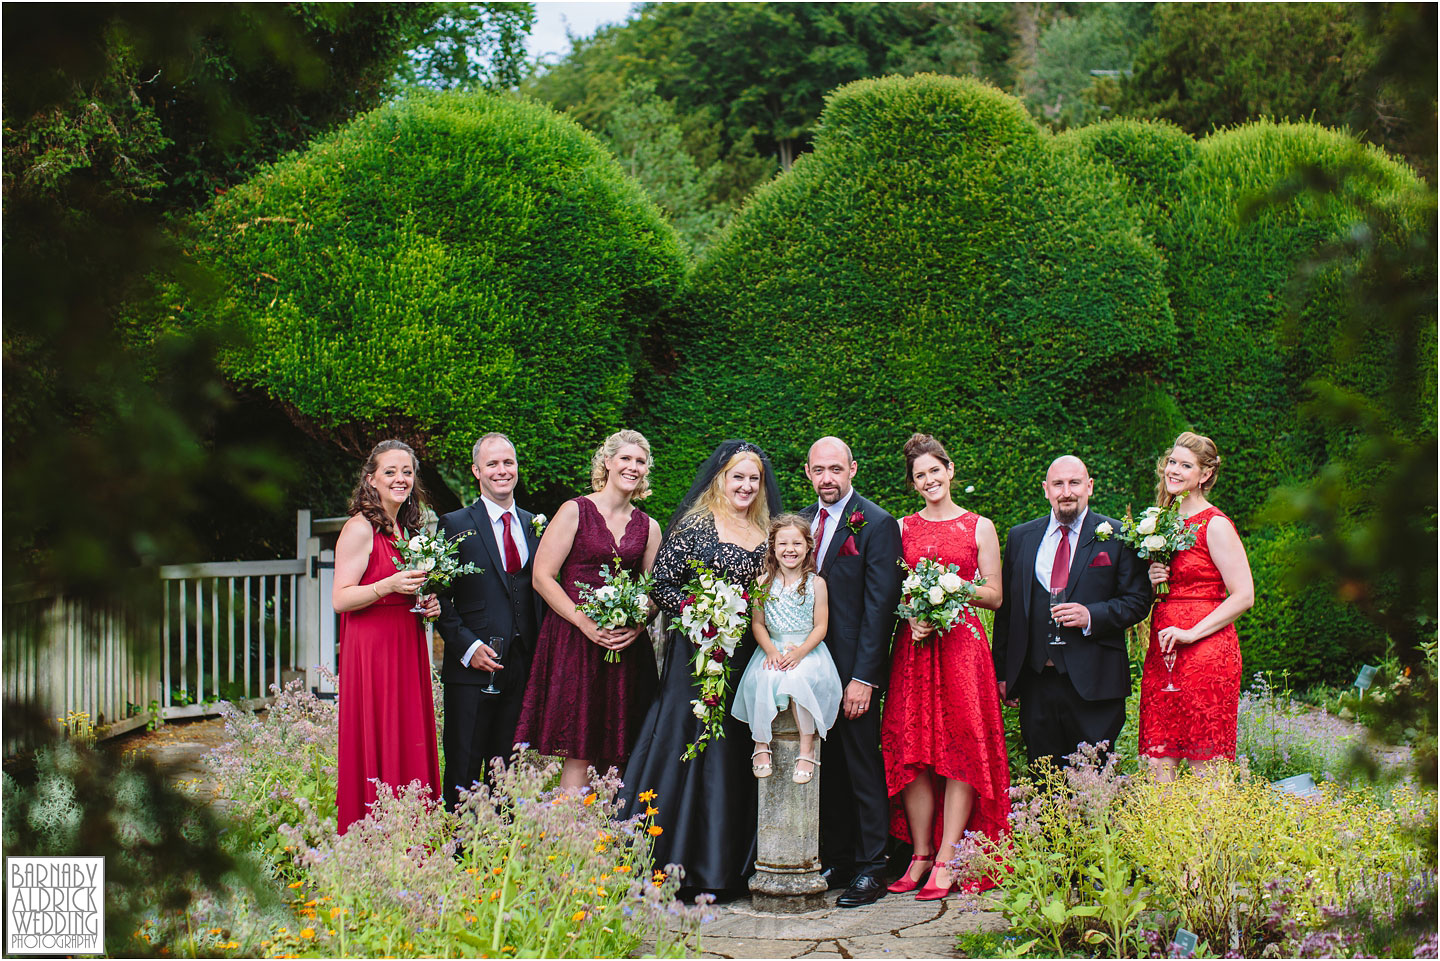 A wedding party group photo at Fountains Abbey Herb Garden